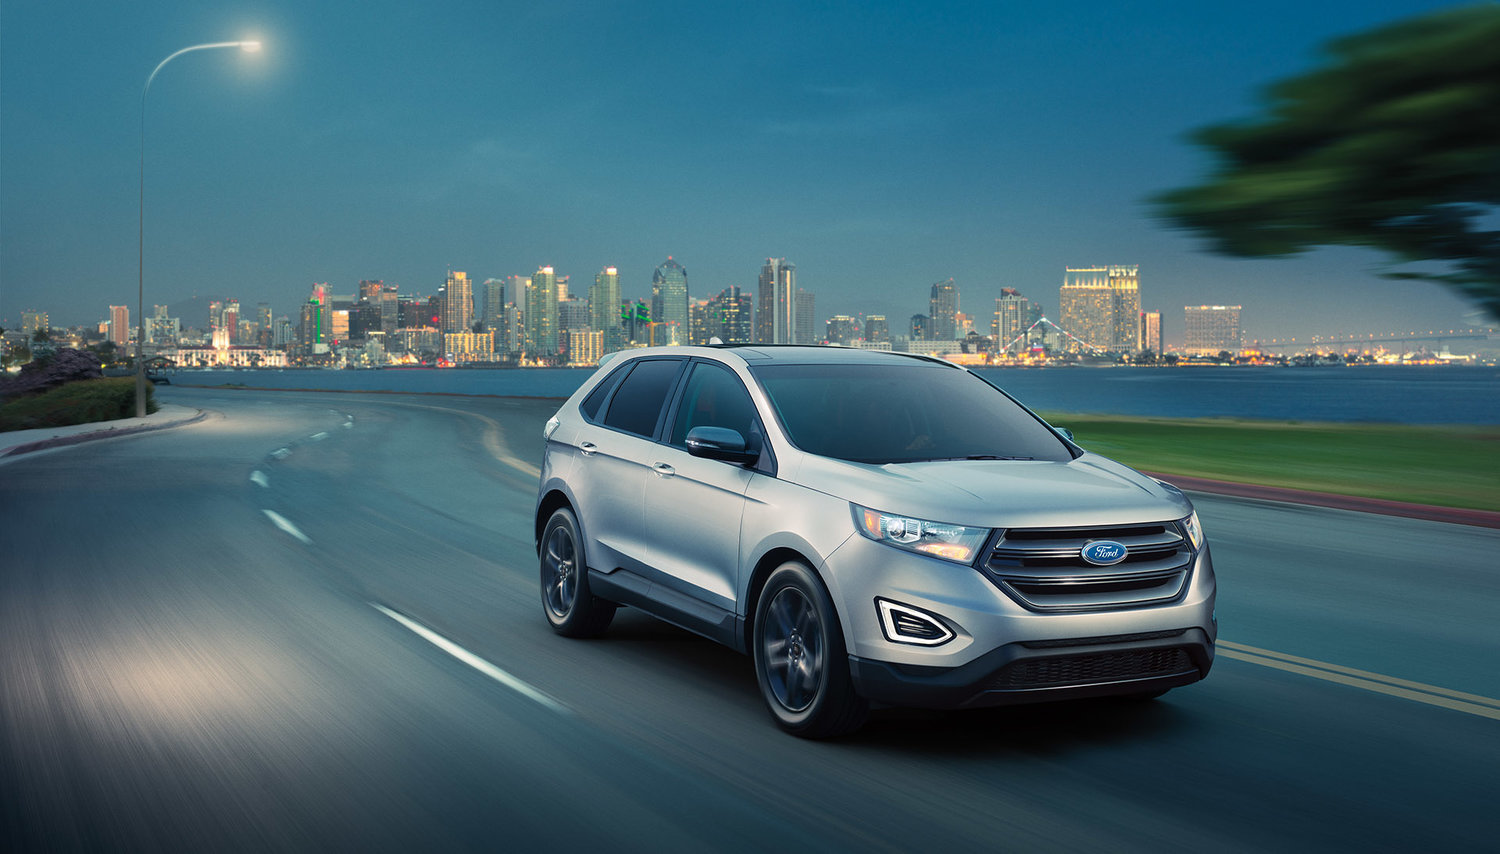 Copy of Ford Edge